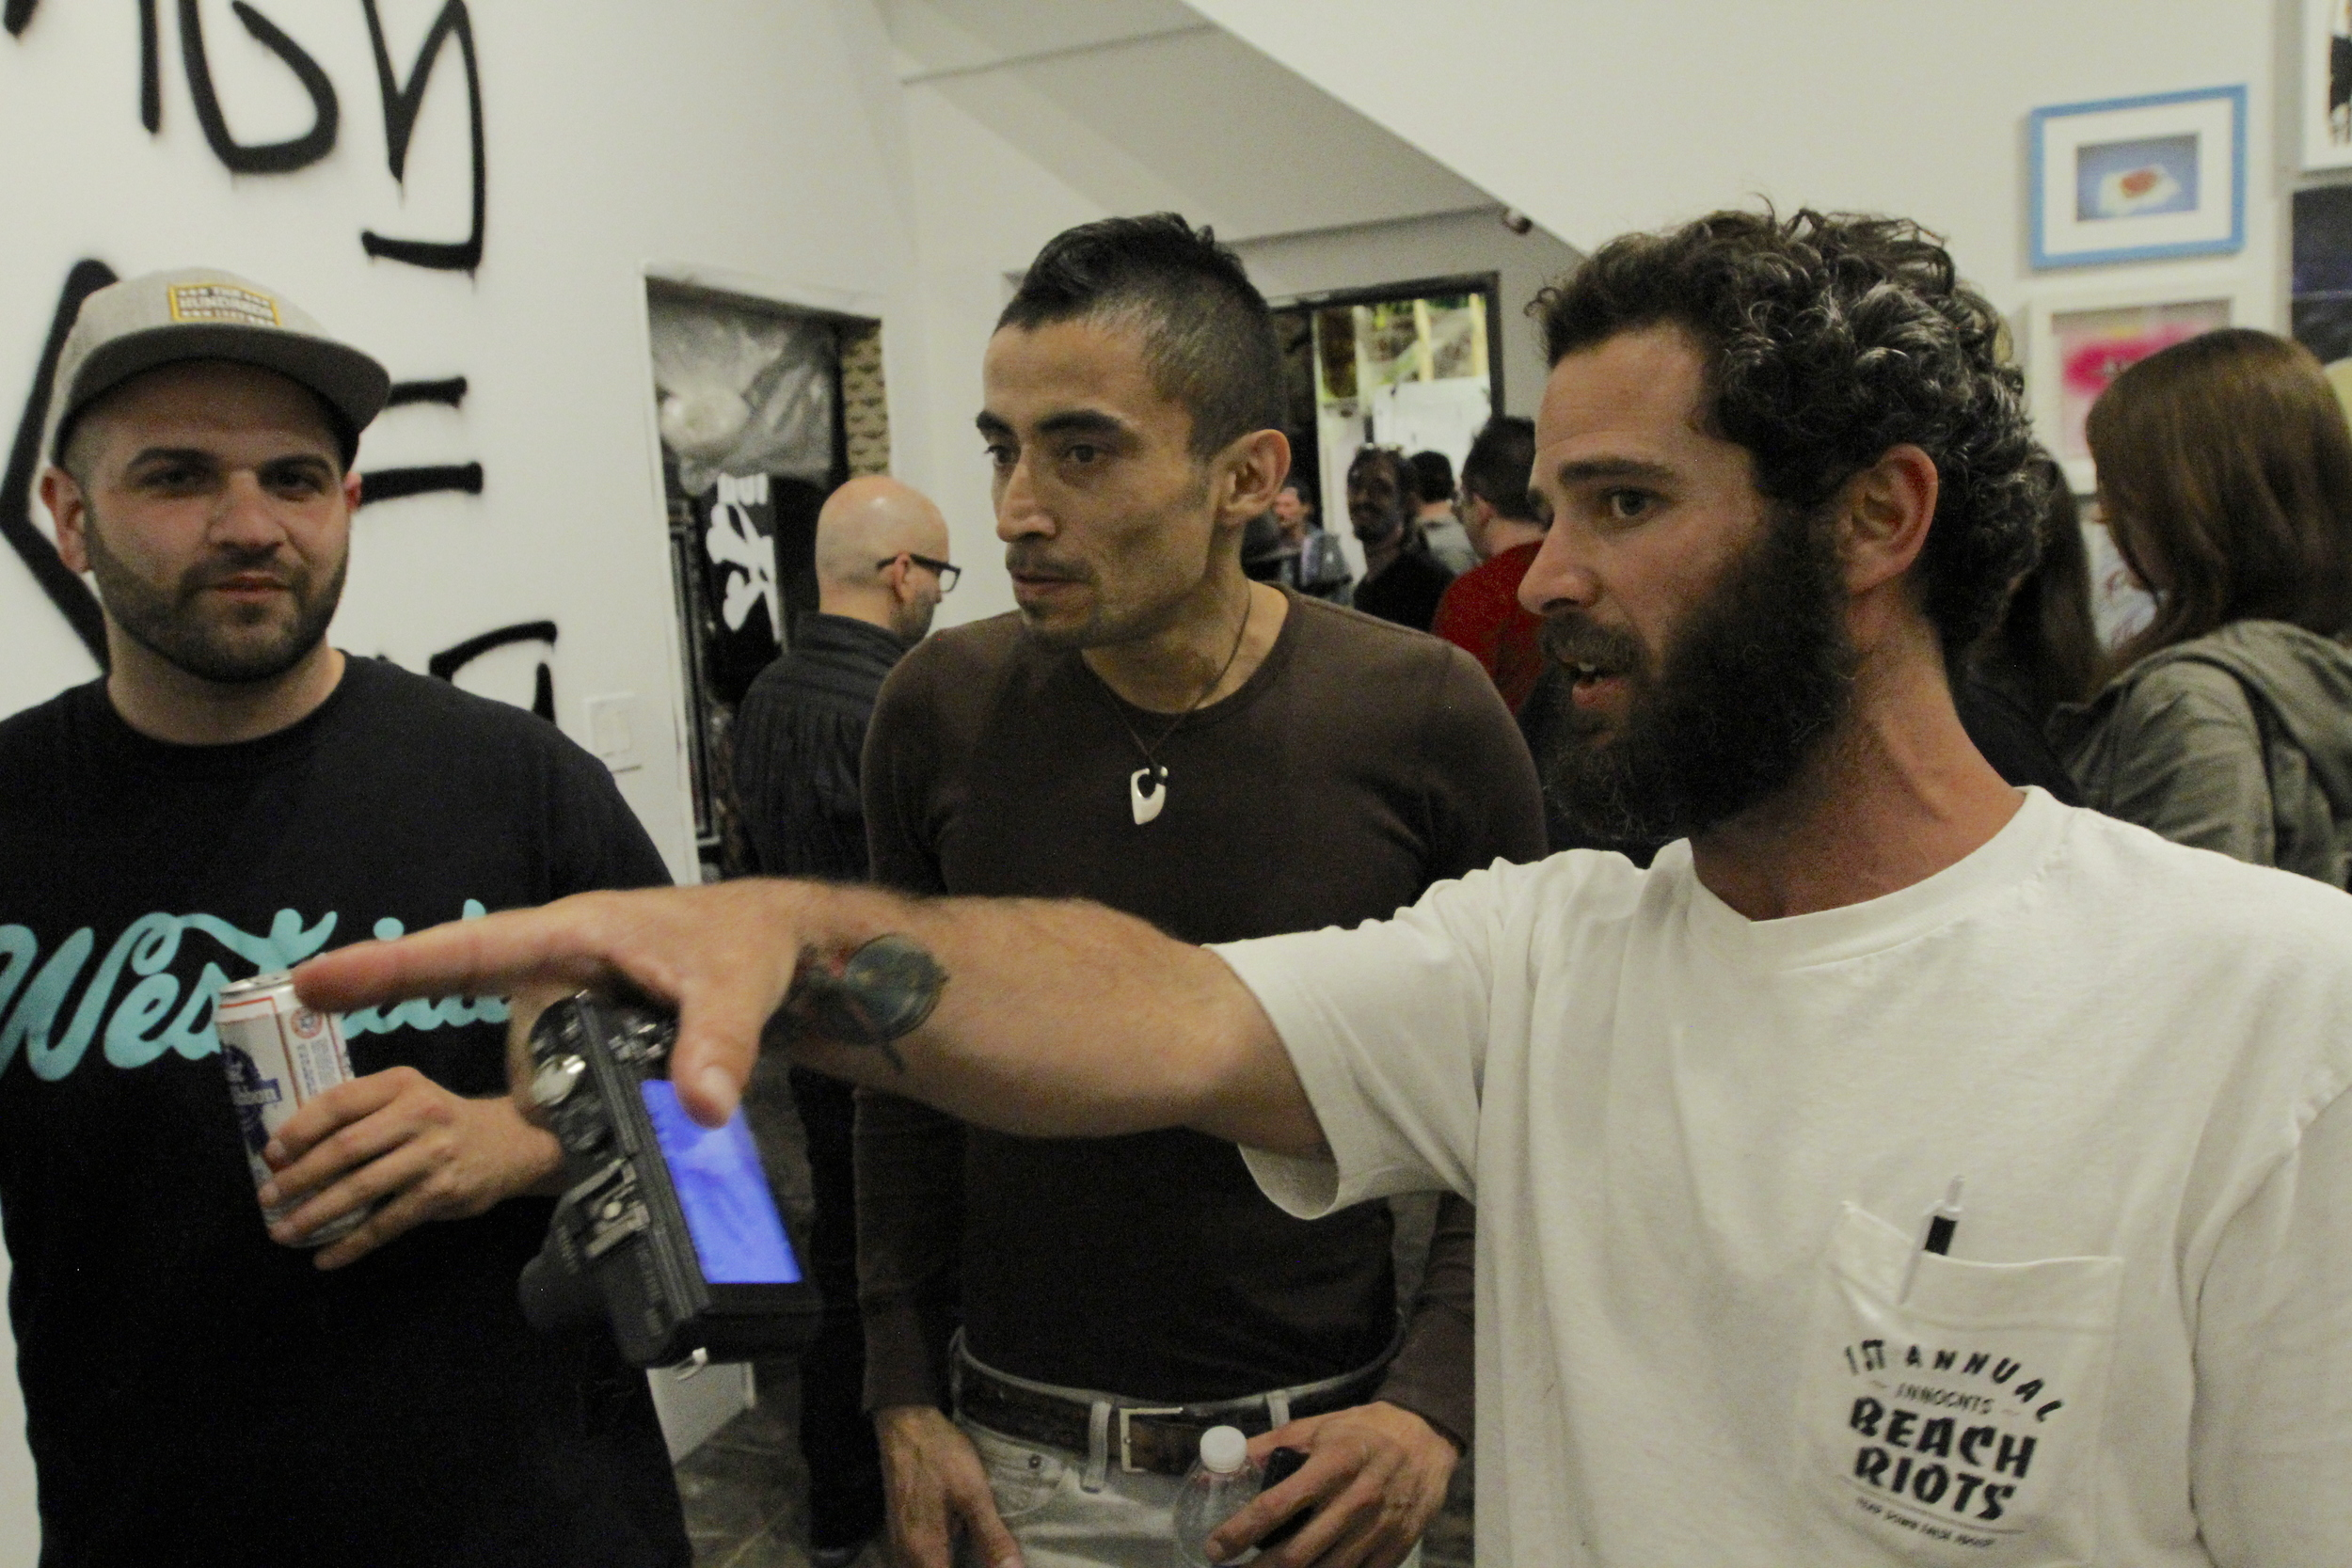 Jason Grillo, Paulo Diaz, and Sean Tully in discussion. Pic by Steven Andrew Garcia